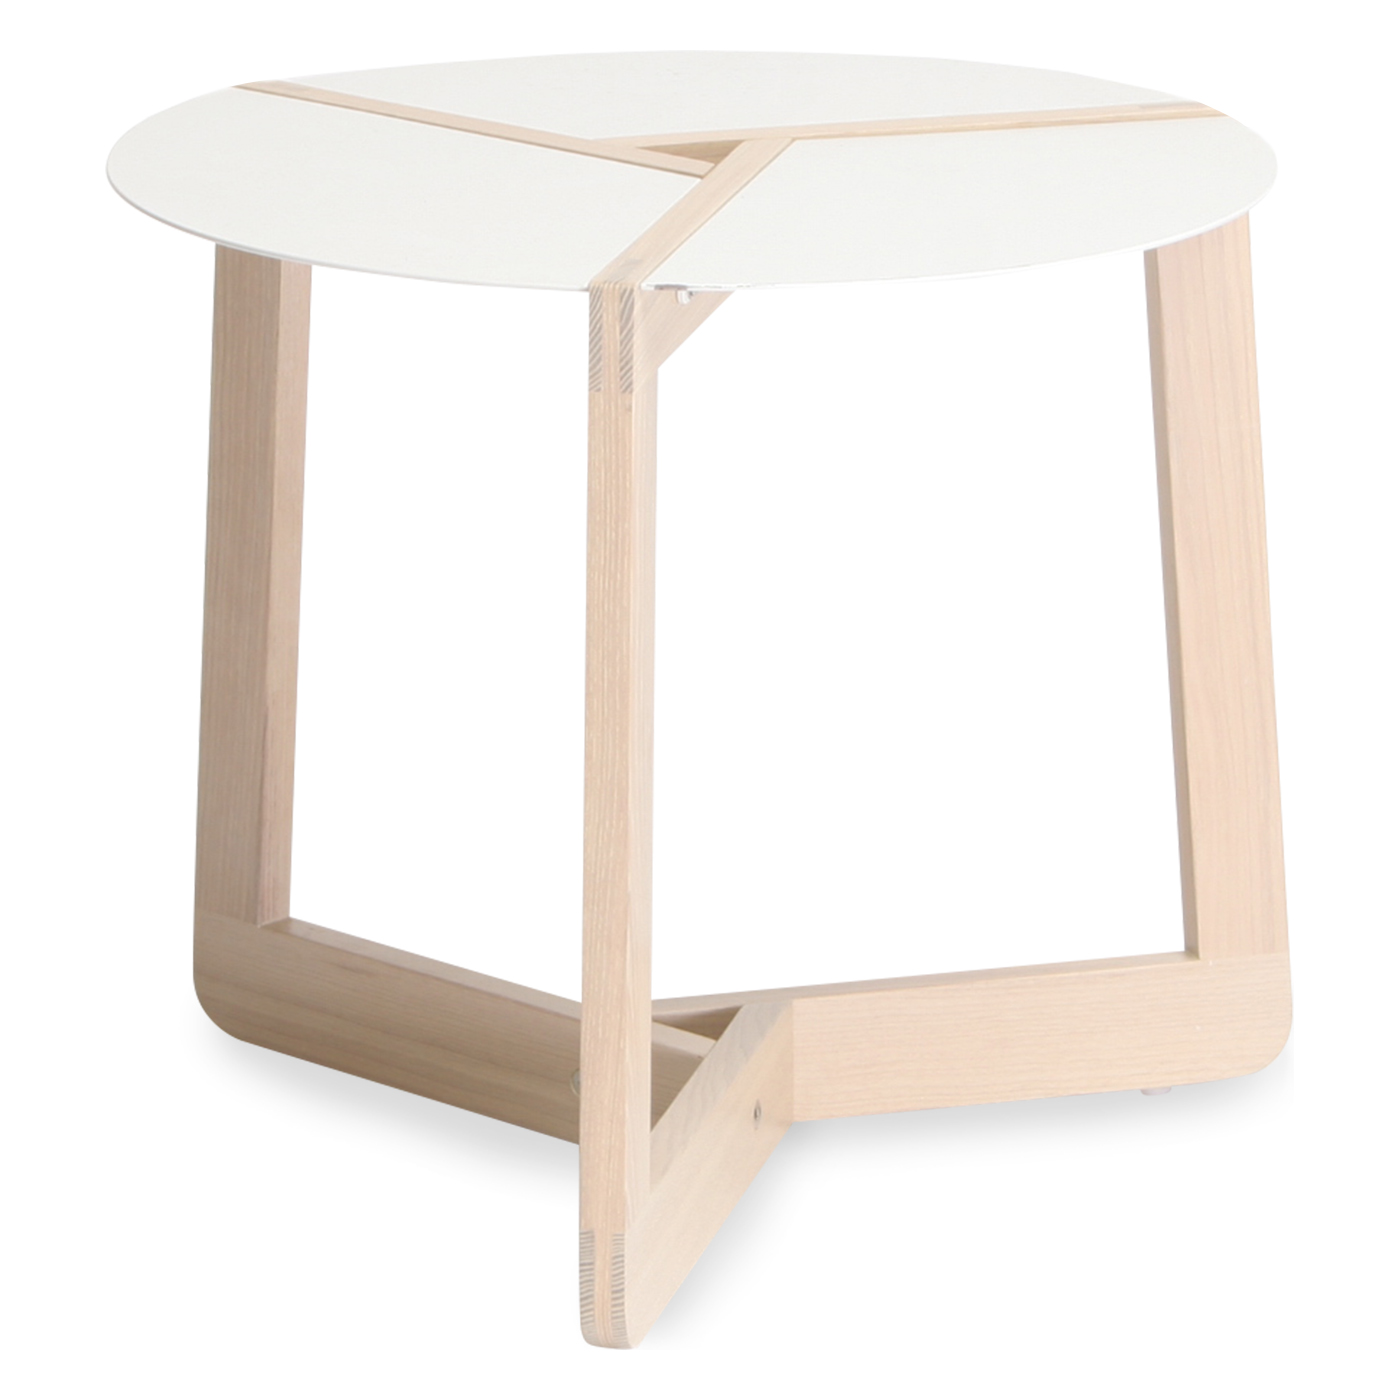 pi small side table NMDOQBE